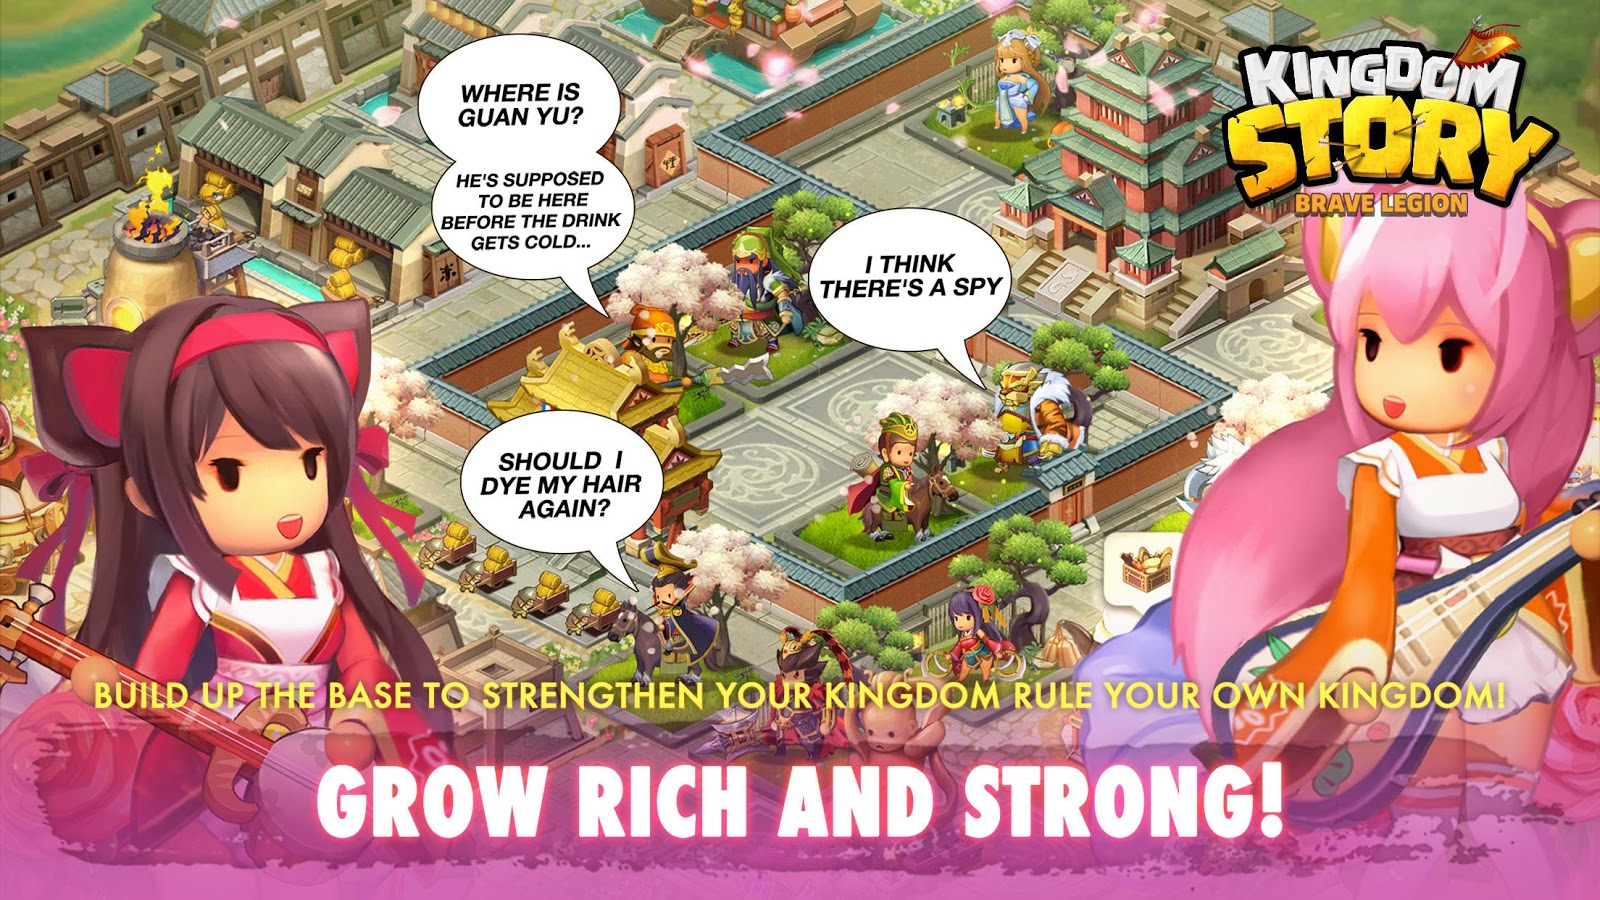 Kingdom Story: Brave Legion Screenshot 9